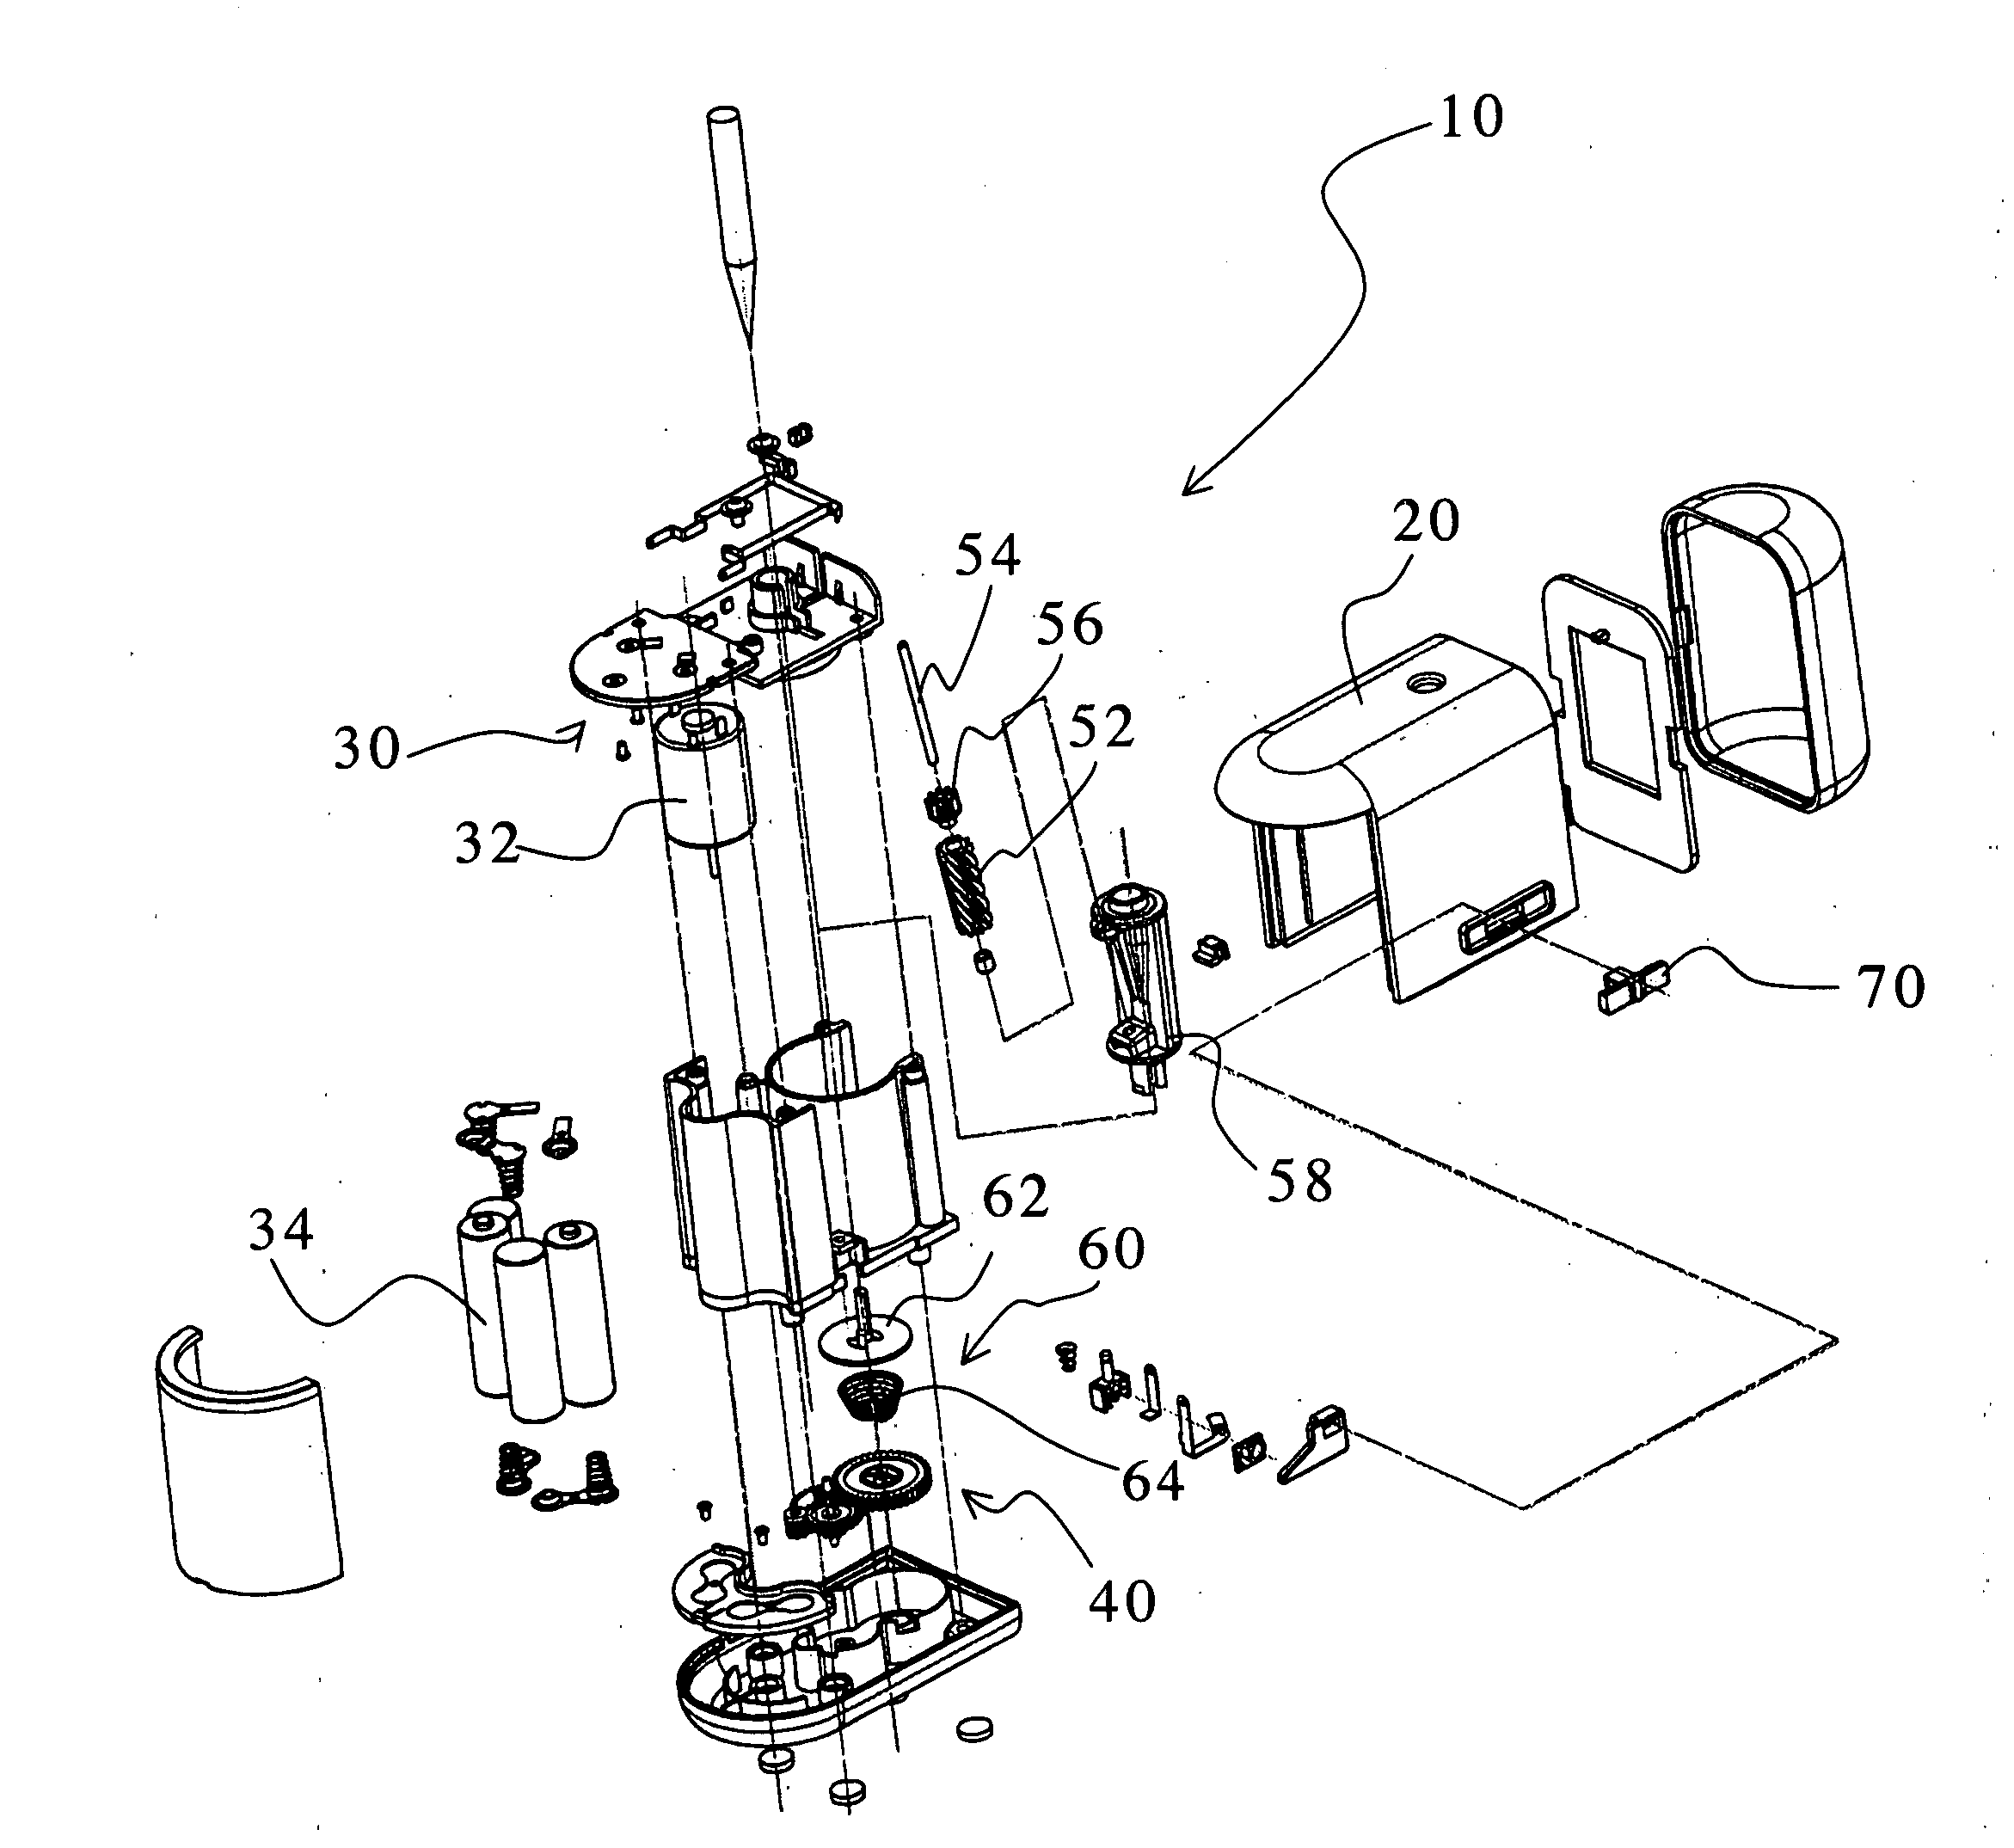 parts of a pocket knife diagram wiring for car stereo installation patent us20060086416 pencil sharpener google patents